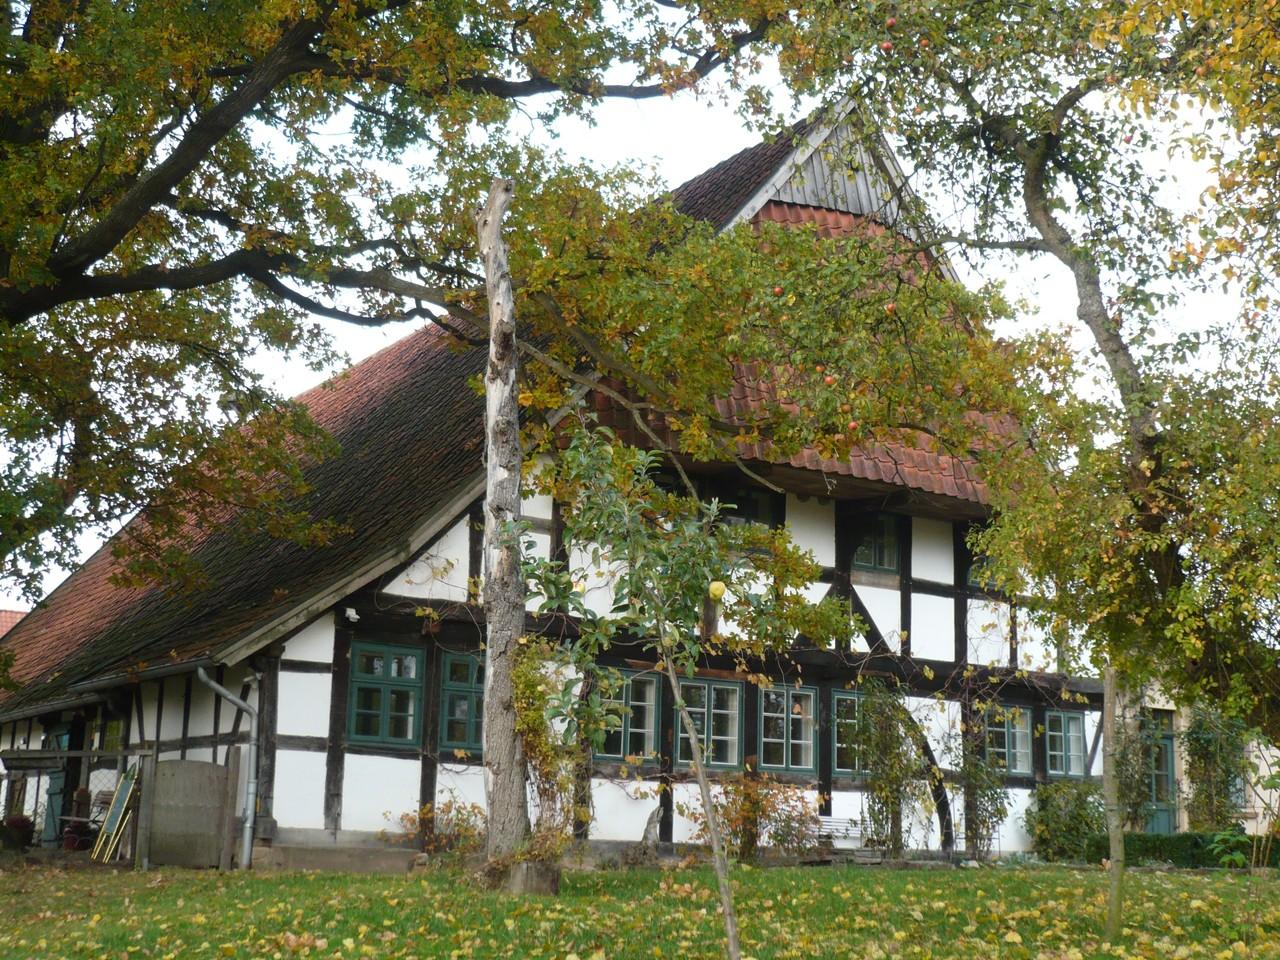 Haus Windheim No2 -Petershagen- Mittelweser